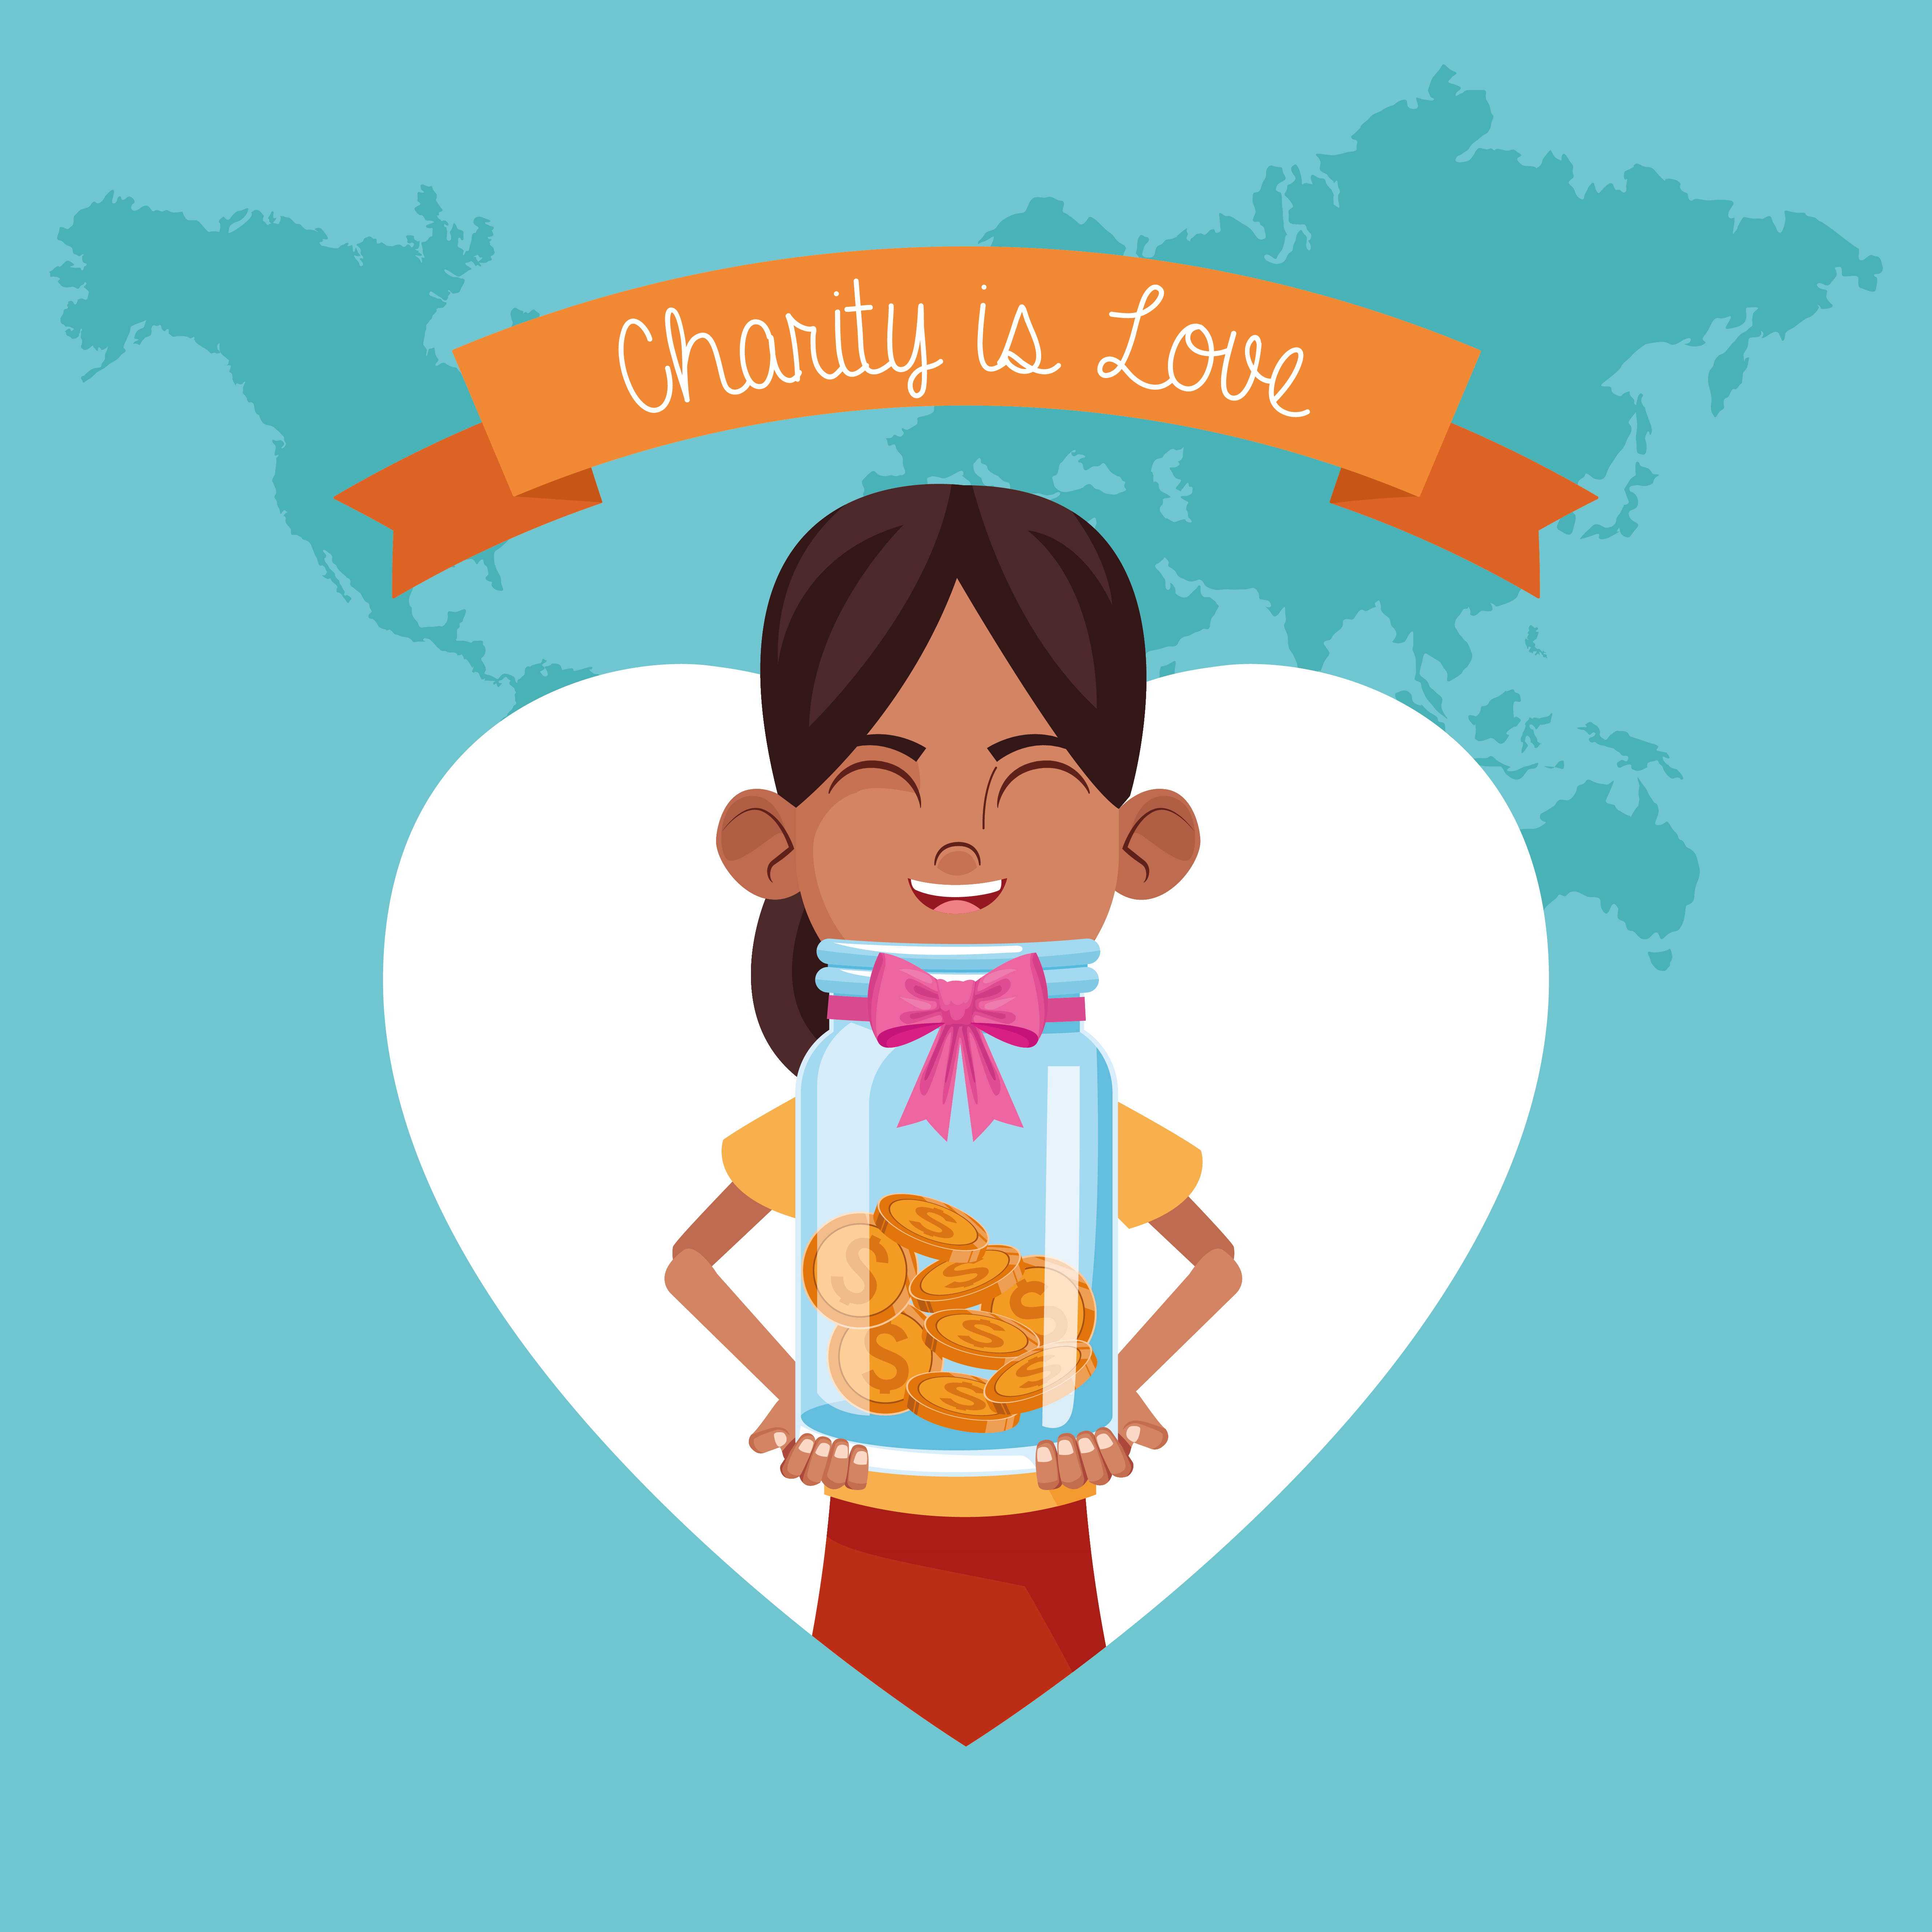 Kid Donation And Charity 657464 Vector Art At Vecteezy